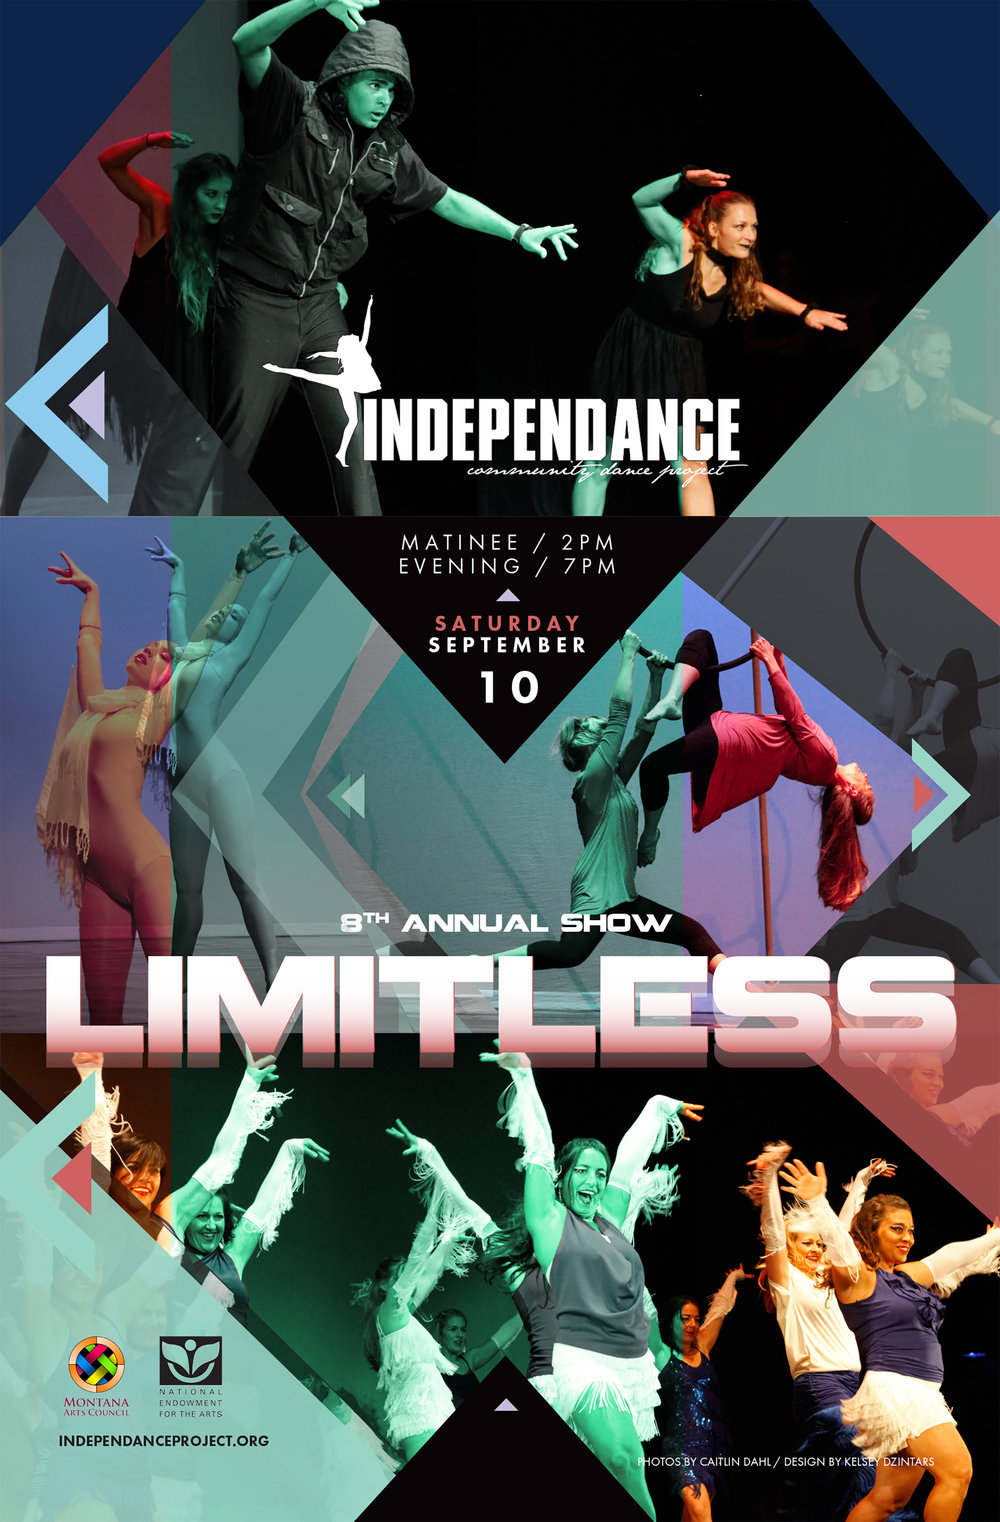 1608_independance_limitless_poster.jpg